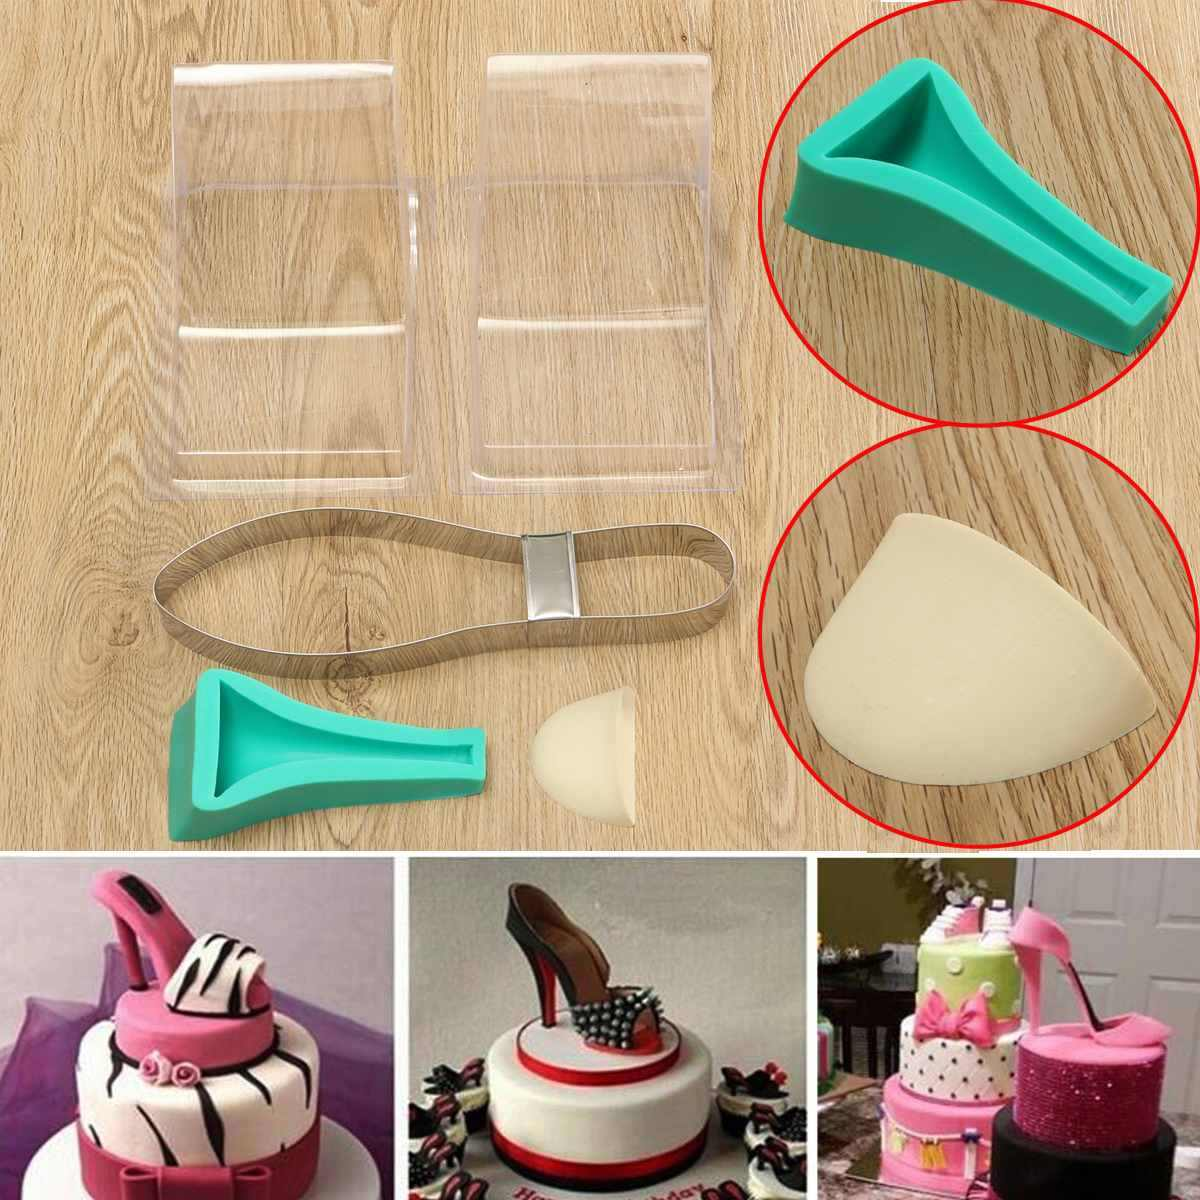 High Heel Shoe Kit Silicone Fondant Cake Mould Decorating Template Mold Wedding Cake Decor DIY Kit